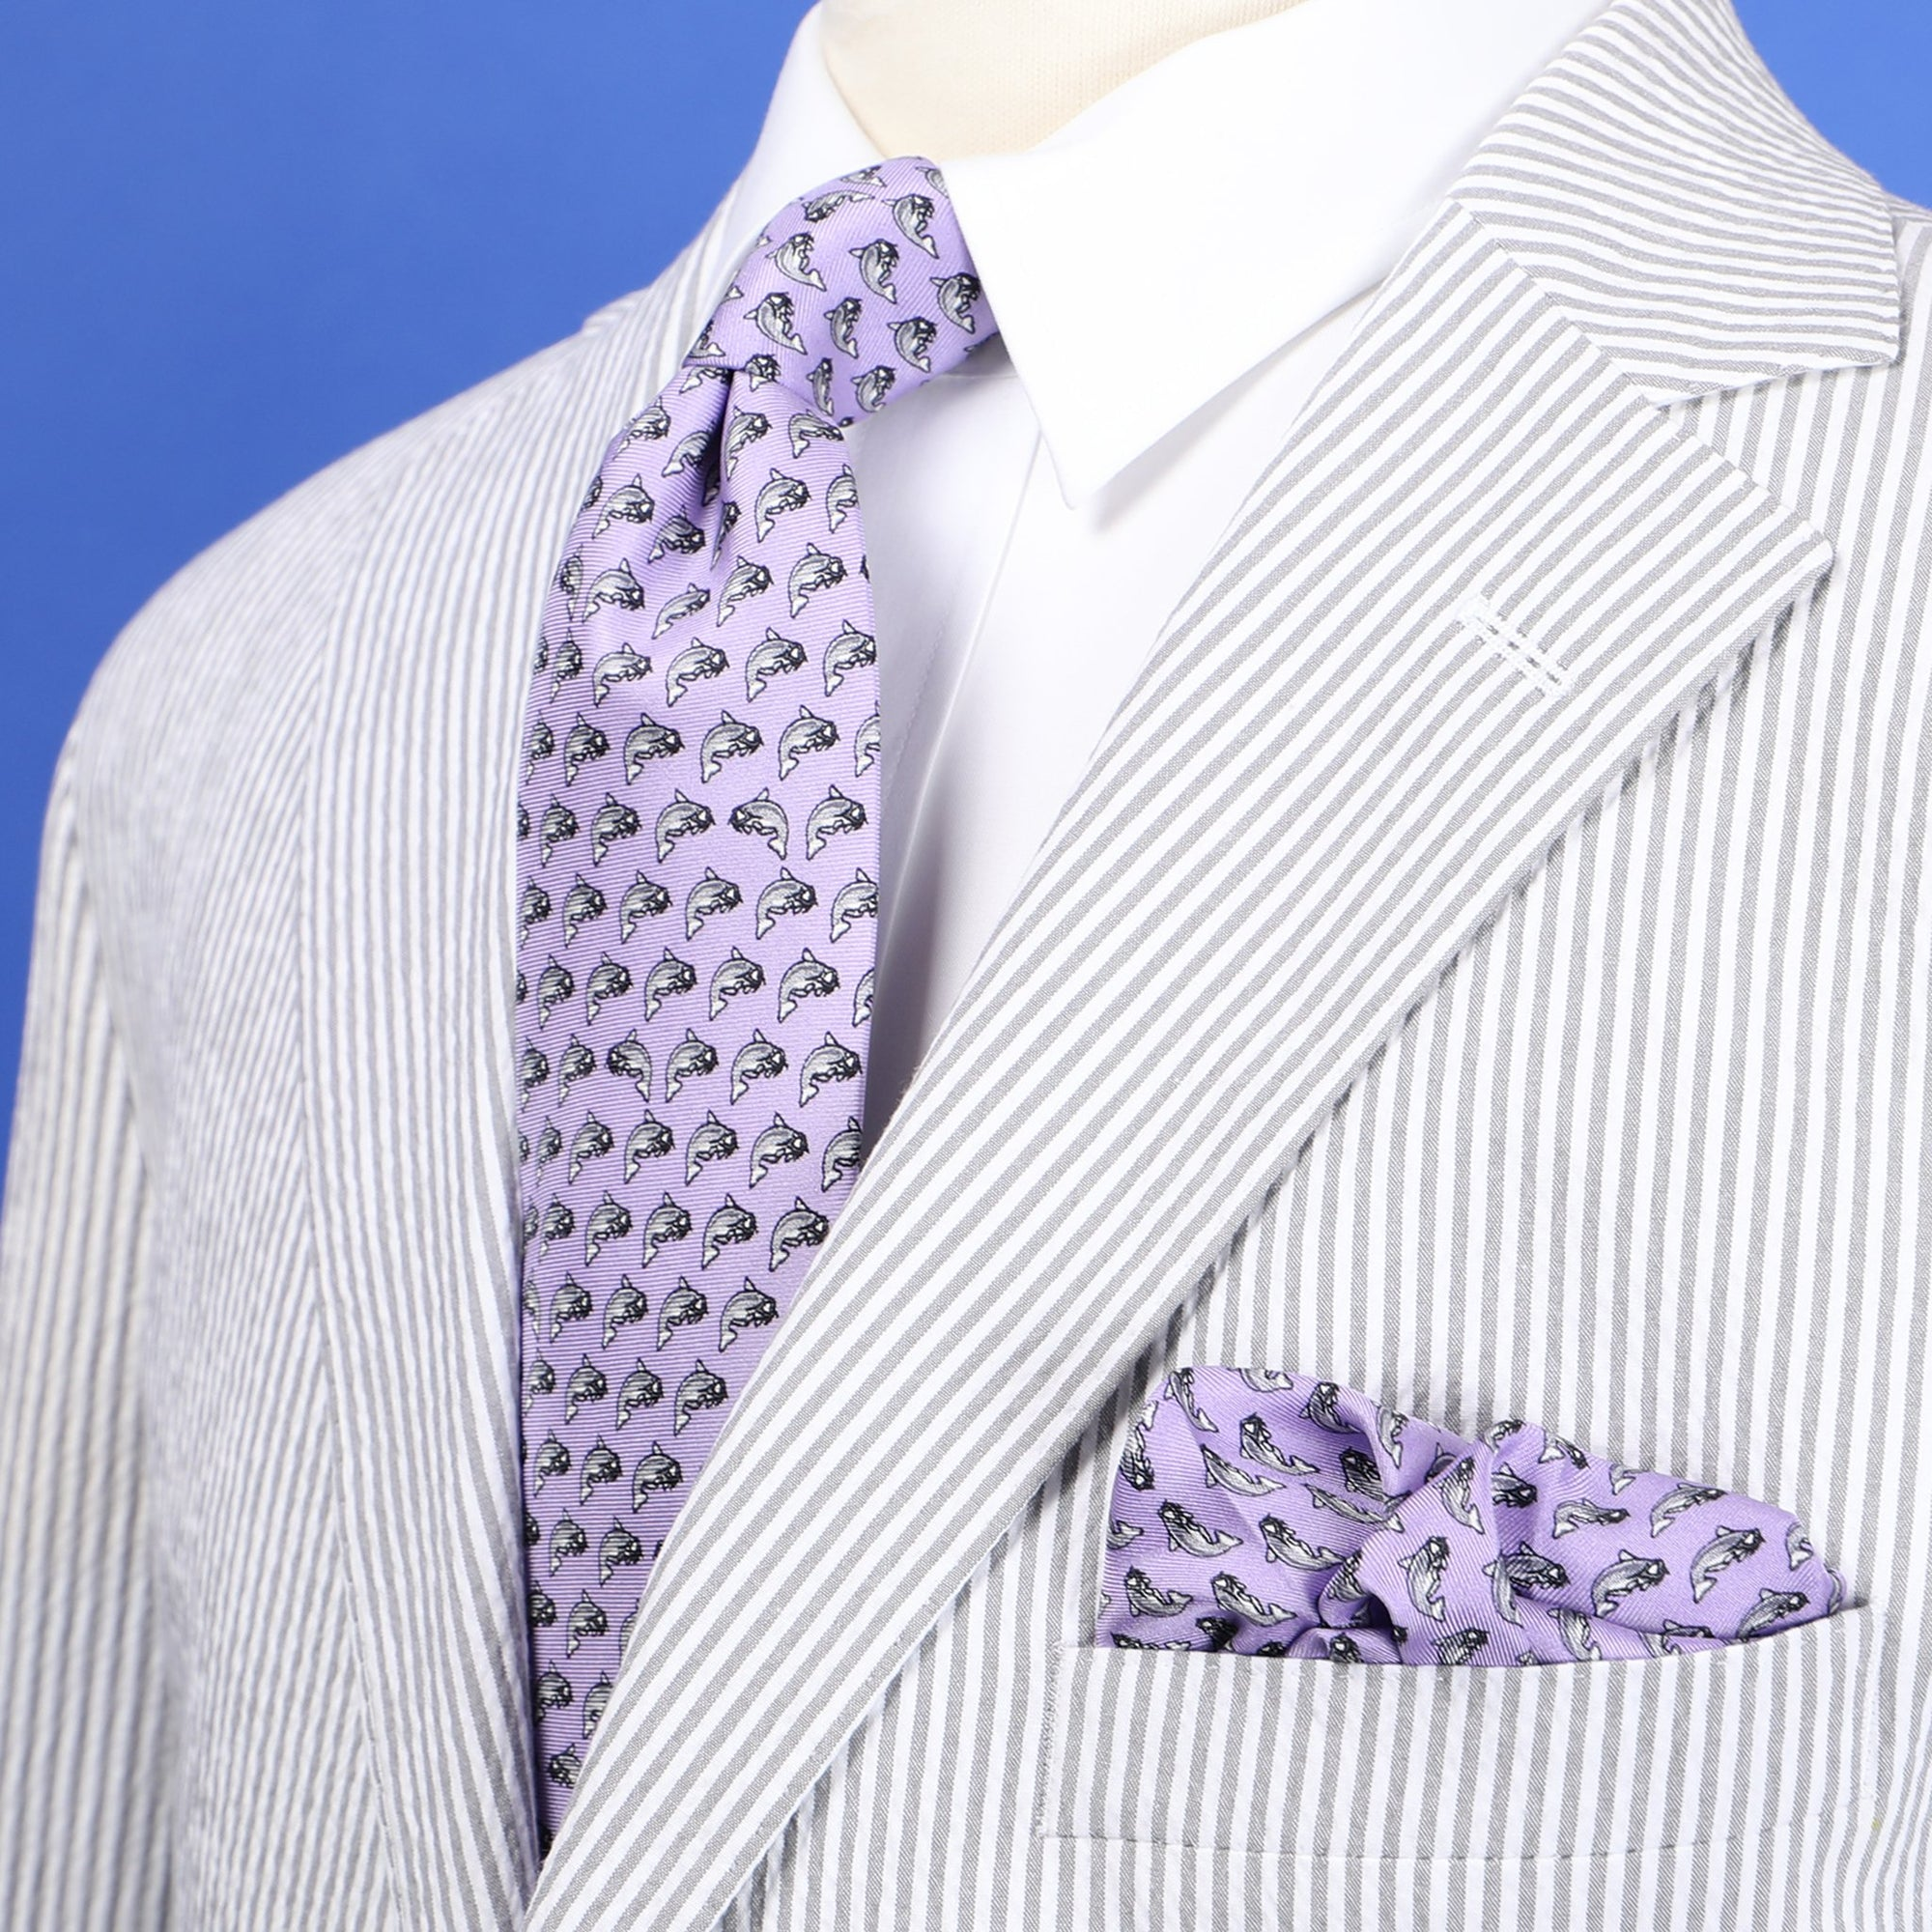 Limited Edition NOLA Couture X Haspel Lavendar Catfish Print Tie - O/S